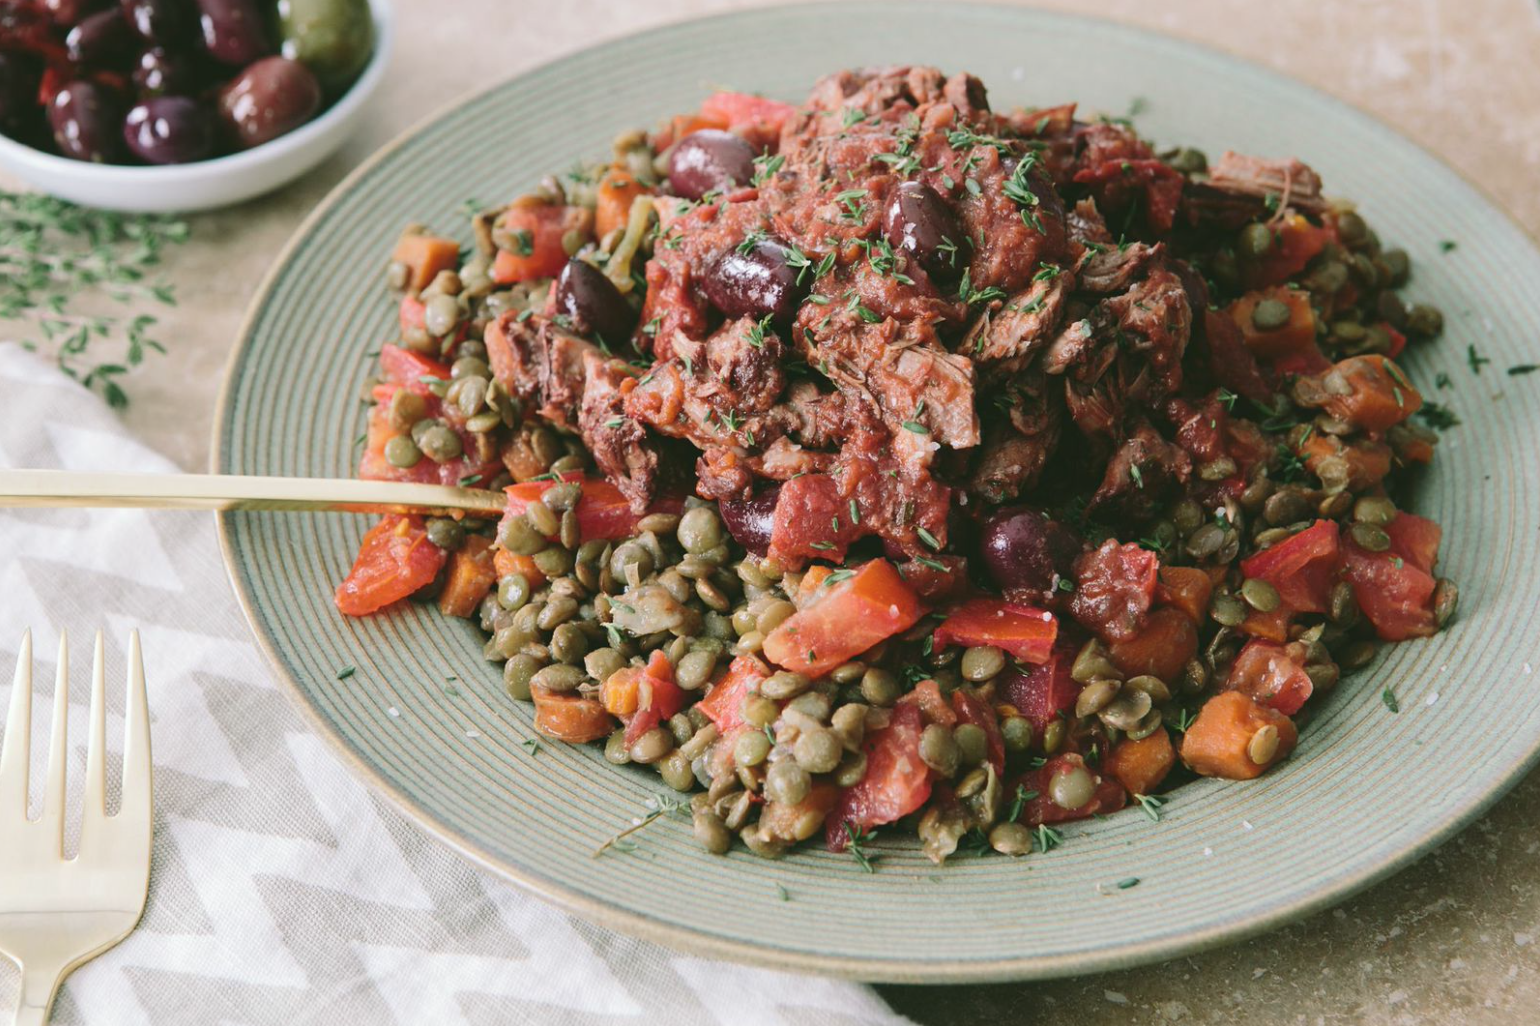 Slow Braised Lamb with Tomatoes and Lentils